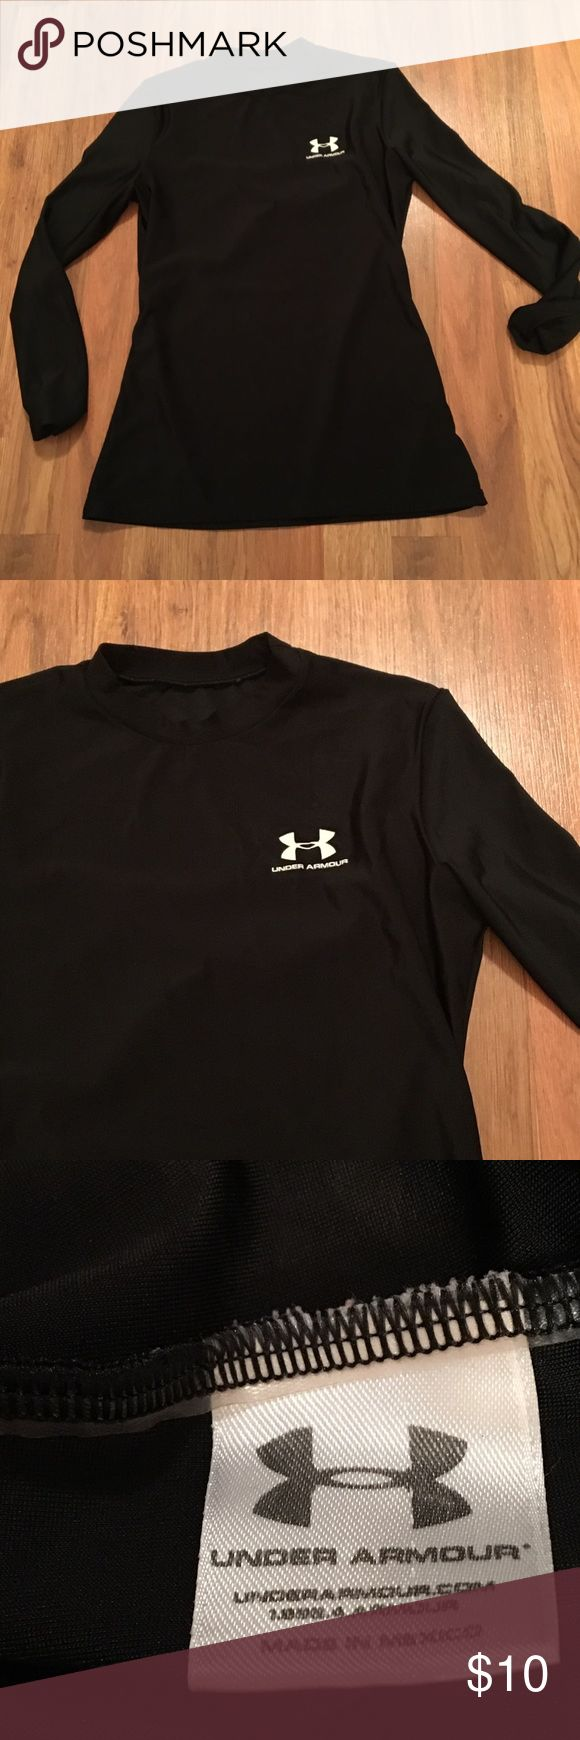 Under Armour Dri Fit T-shirt YLG Under Armour Dri Fit T-shirt YLG Under Armour Shirts & Tops Tees - Long Sleeve